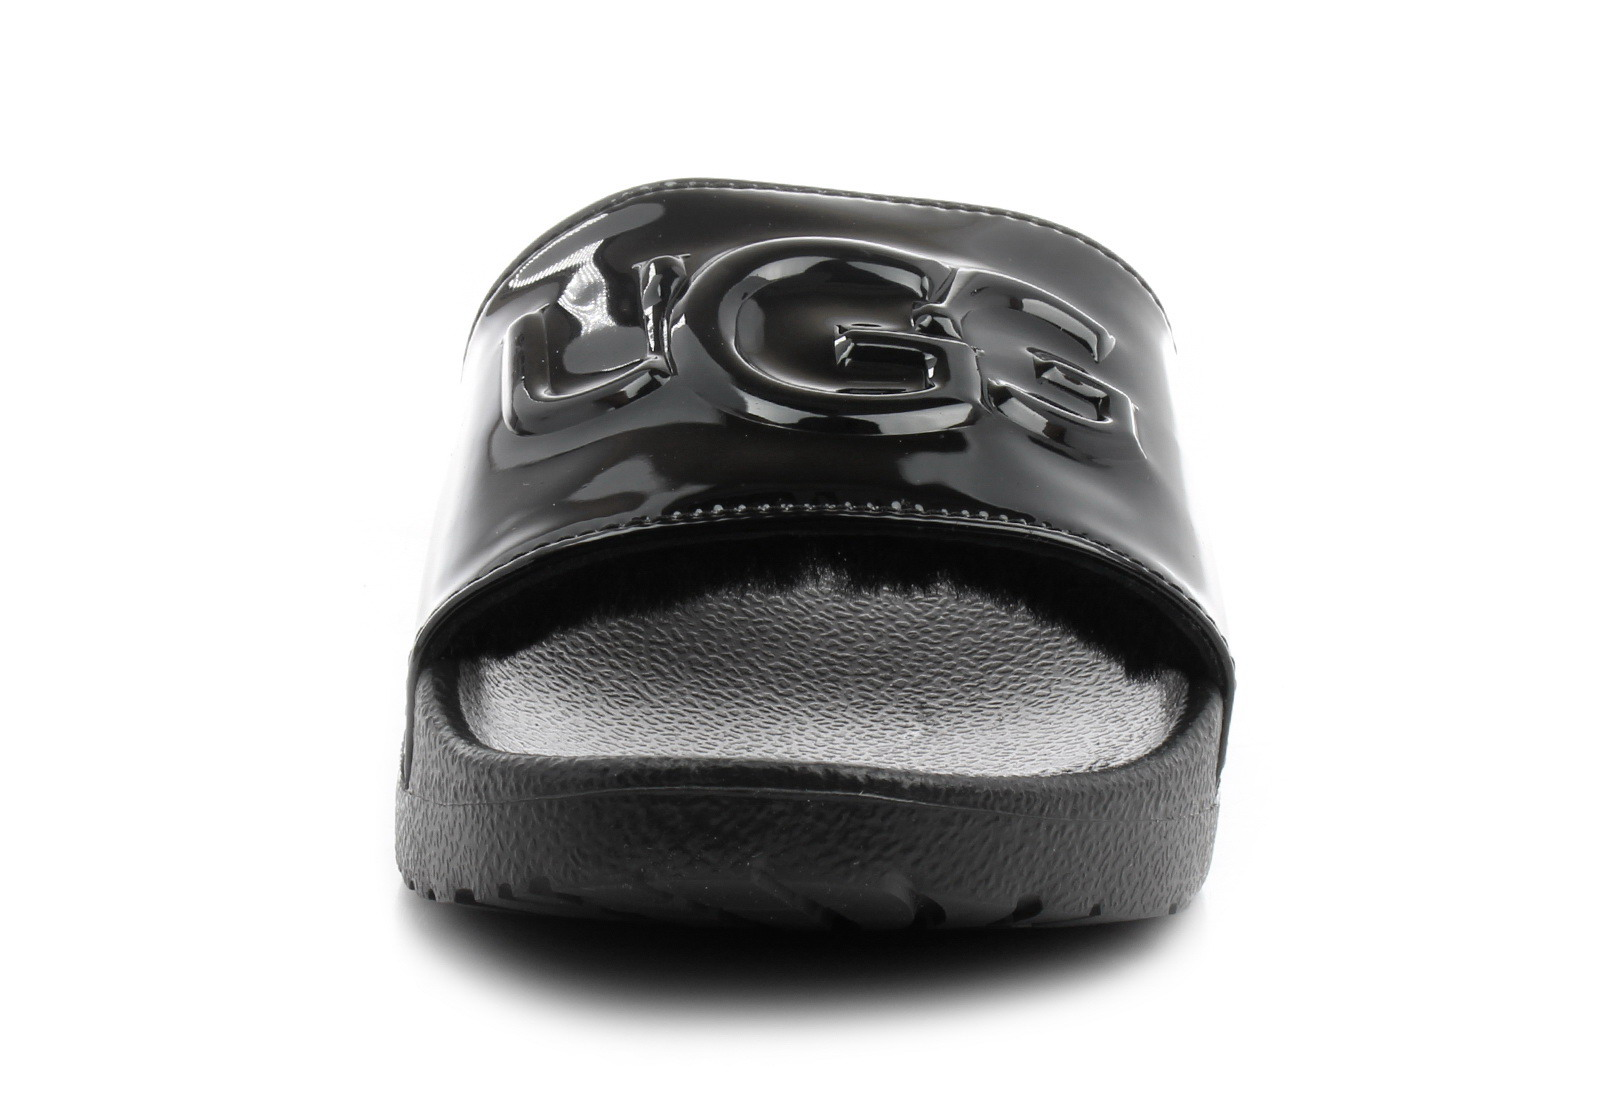 bb62b03638a Ugg Slippers - Royale Graphic Metallic - 1101189-blk - Online shop for  sneakers, shoes and boots